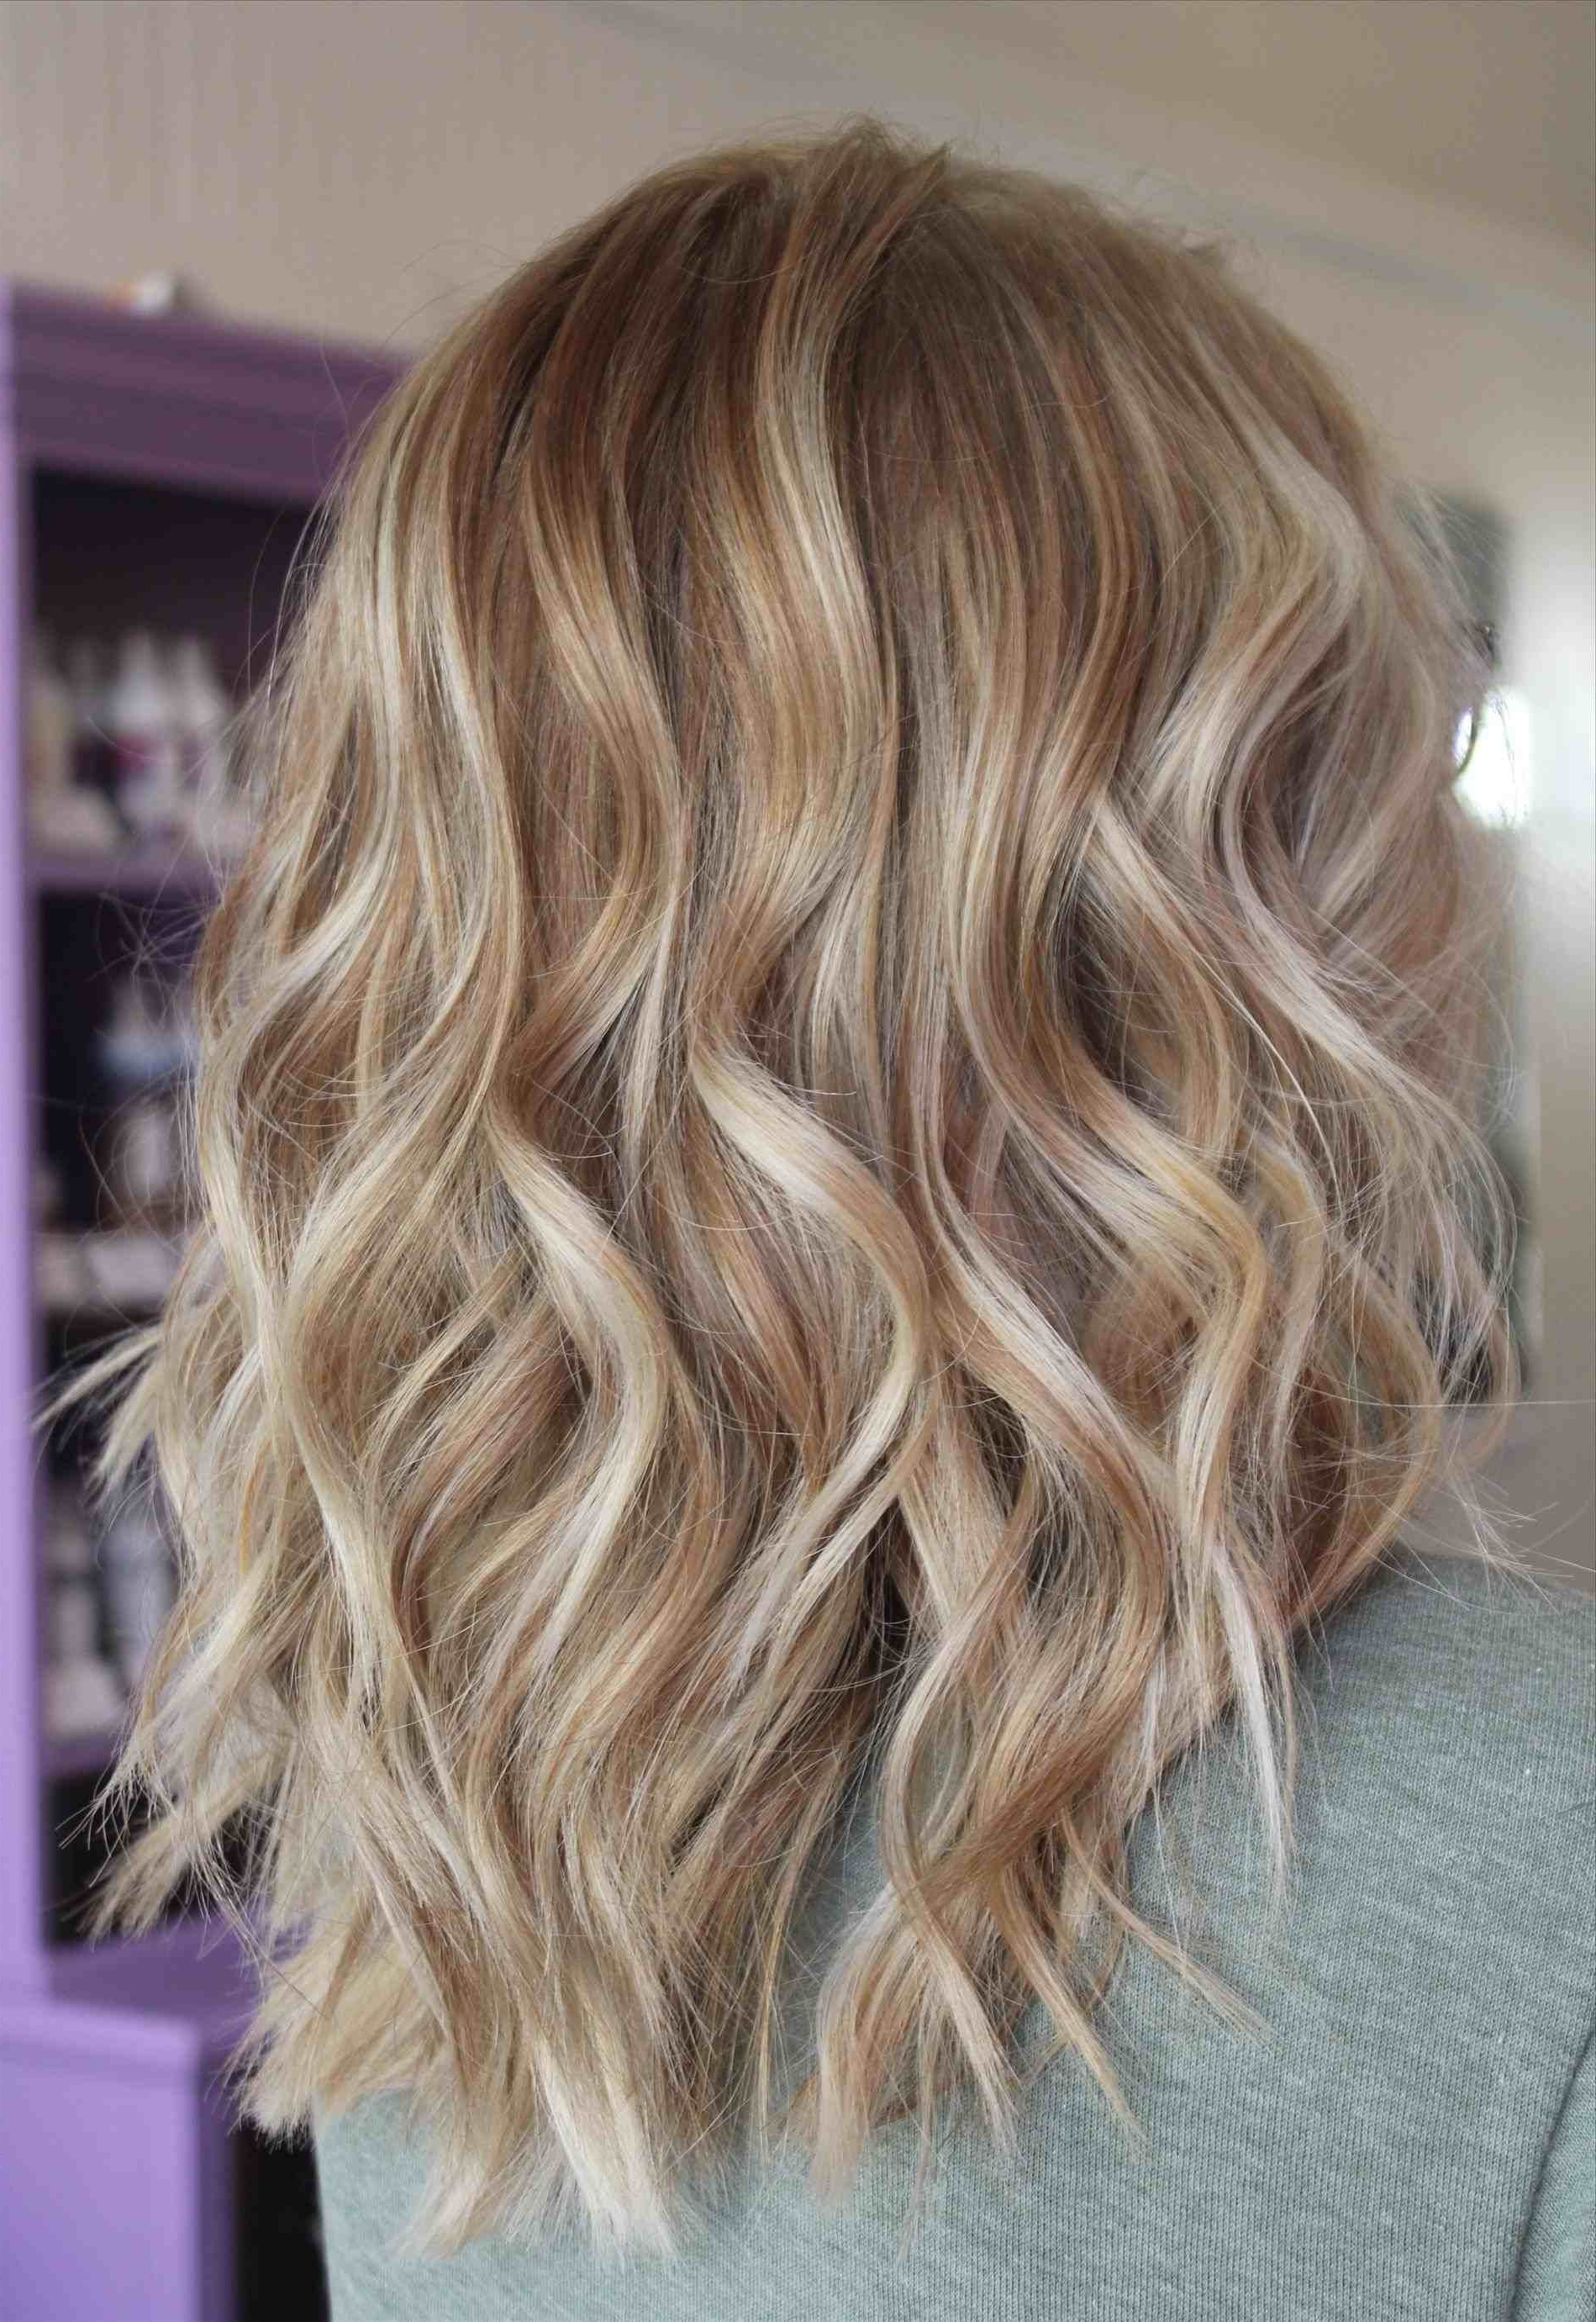 Briighteyes Our Rhpinterestcom Latte Cool Blonde Balayage Curly Hair Regarding Current Cool Dirty Blonde Balayage Hairstyles (View 12 of 20)